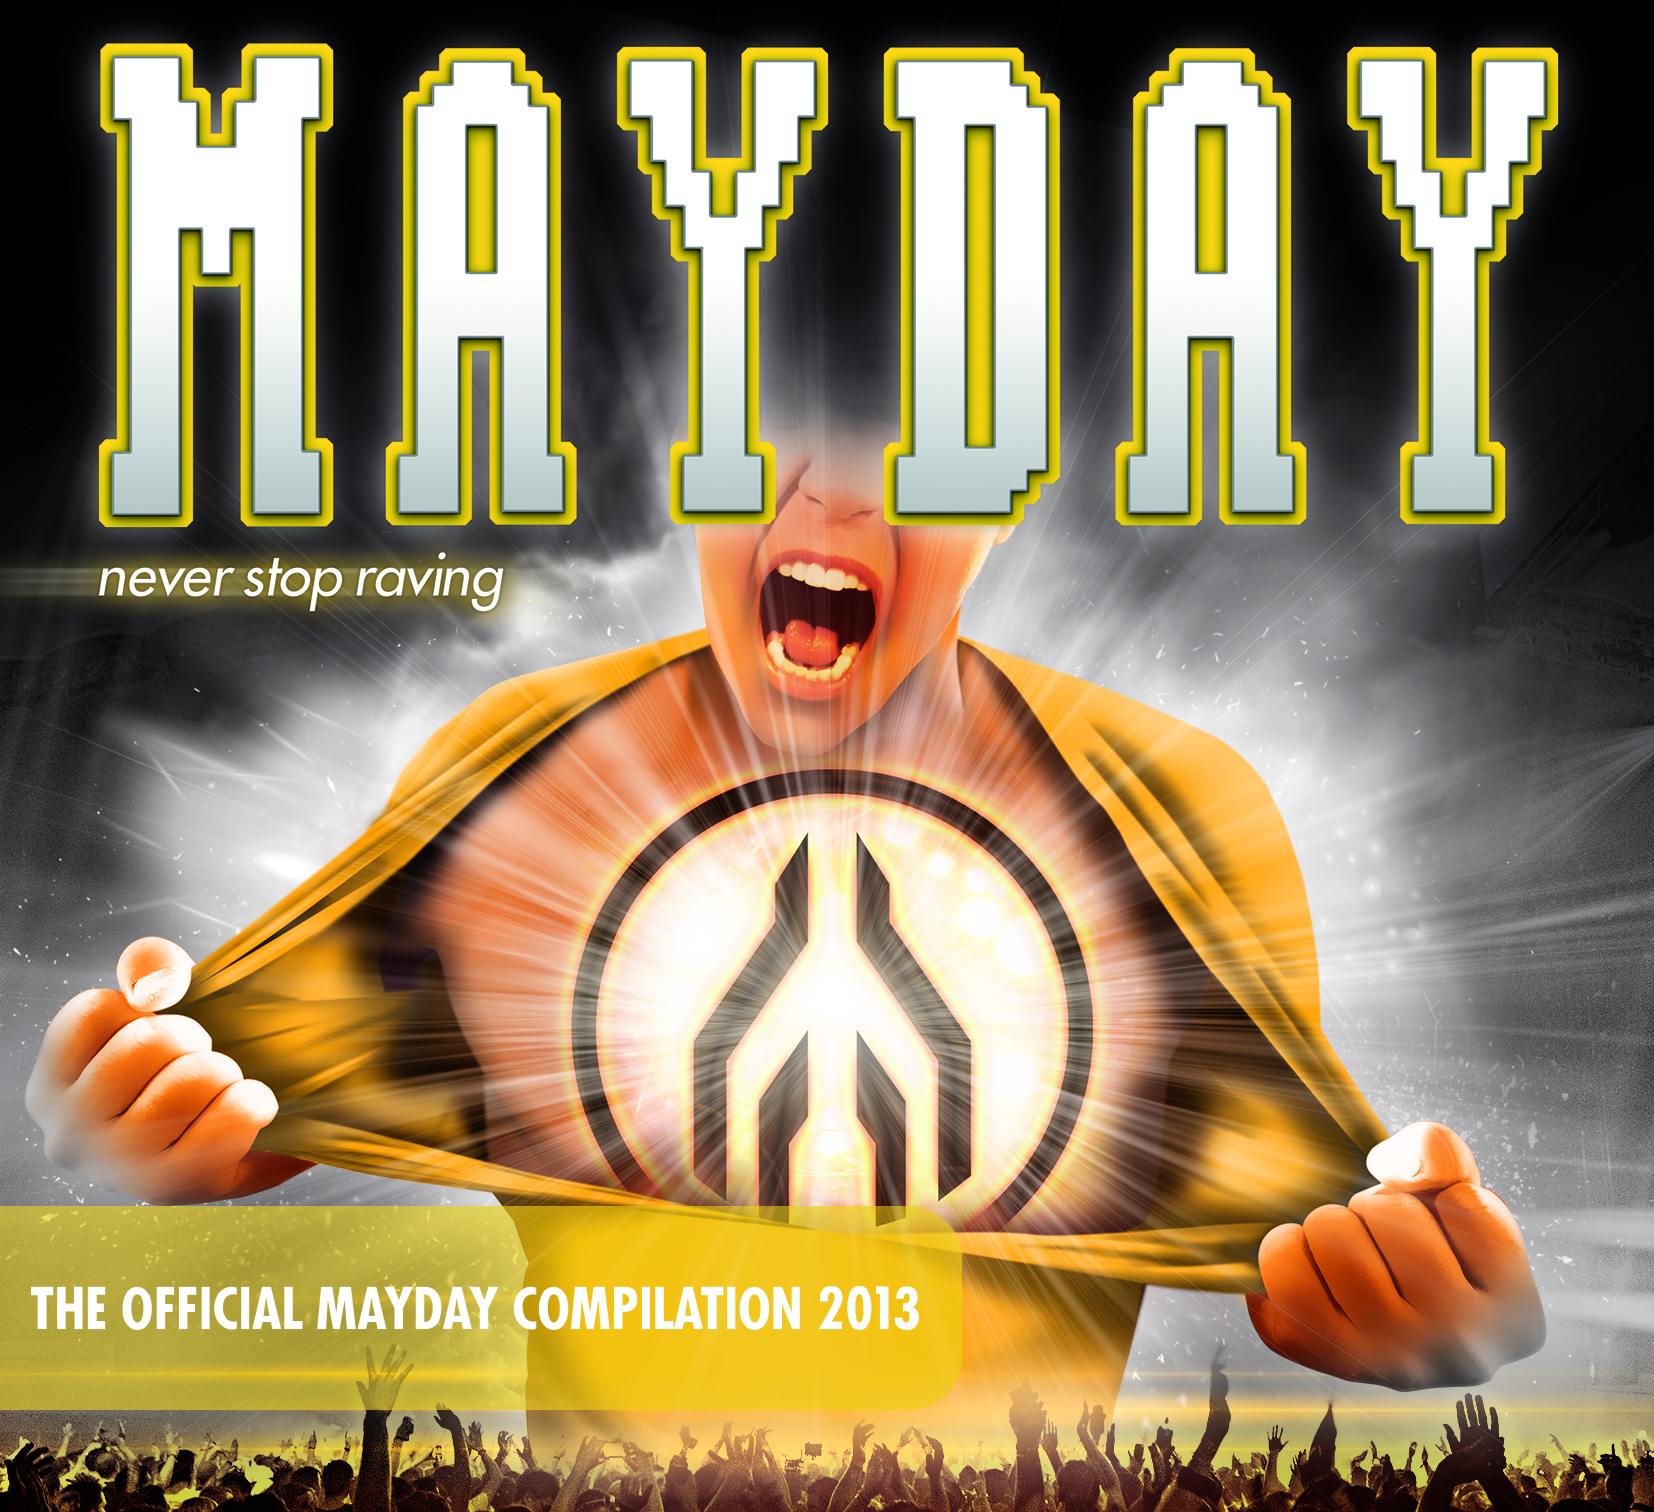 """MAYDAY """"Never stop Raving"""" – jetzt kommt die Compilation!"""